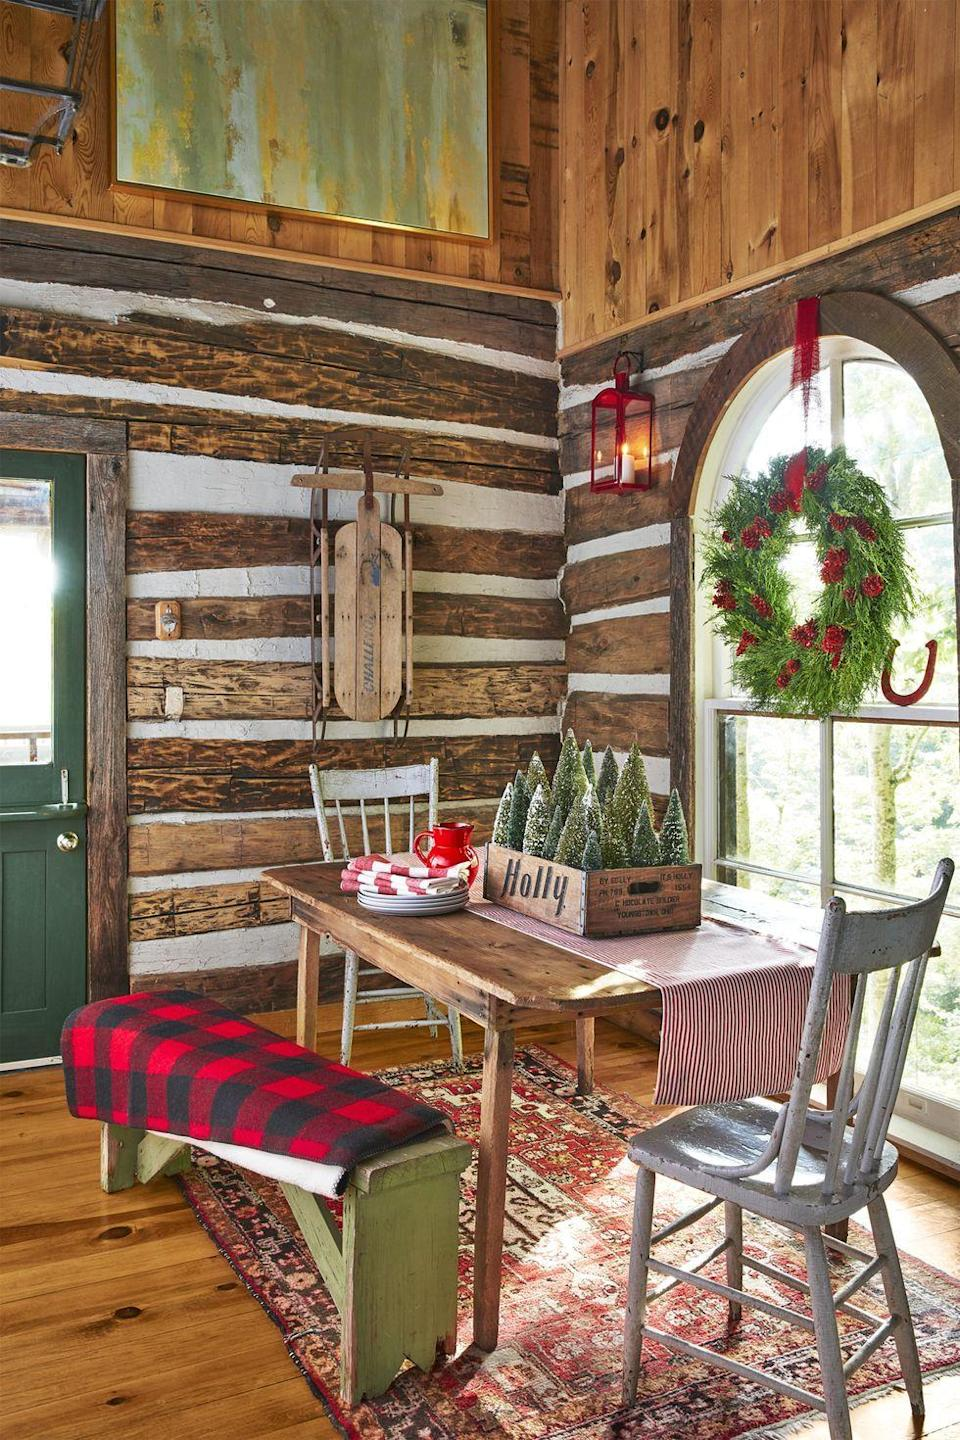 """<p>Christmas may be """"the most wonderful time of the year,"""" but that doesn't mean you can't celebrate <a href=""""https://www.goodhousekeeping.com/life/g34313699/best-winter-activities/"""" rel=""""nofollow noopener"""" target=""""_blank"""" data-ylk=""""slk:all that the winter season brings"""" class=""""link rapid-noclick-resp"""">all that the winter season brings</a> in the months to follow. Tap into the season's sweeping feeling of cozy and calm by dressing your home with these winter decorating ideas. These gorgeous decorations — some <a href=""""https://www.goodhousekeeping.com/holidays/christmas-ideas/g34004079/winter-crafts/"""" rel=""""nofollow noopener"""" target=""""_blank"""" data-ylk=""""slk:easy winter crafts"""" class=""""link rapid-noclick-resp"""">easy winter crafts</a>, some ready-made — highlight everything that makes the post-Christmas months merry and bright: the enchanting aroma of citrus and pine, warm nights cuddled up by the fire, frost-covered front lawns, and so much more. </p><p>Although most of the ideas stay away from traditional Christmas colors and embellishments, many can be arranged well before December 25 and stay up until we usher in the spring season. You can go big or small with these winter decorations — string fresh garland across <a href=""""https://www.goodhousekeeping.com/home/decorating-ideas/g29590280/fireplace-mantel-ideas/"""" rel=""""nofollow noopener"""" target=""""_blank"""" data-ylk=""""slk:your fireplace mantel"""" class=""""link rapid-noclick-resp"""">your fireplace mantel</a>, craft together a custom centerpiece to make family dinners feel extra-special, <a href=""""https://www.goodhousekeeping.com/home/craft-ideas/how-to/g1488/diy-winter-wreaths/"""" rel=""""nofollow noopener"""" target=""""_blank"""" data-ylk=""""slk:hang a winter wreath"""" class=""""link rapid-noclick-resp"""">hang a winter wreath</a> on your front door, make your living room feel as magical as a Hallmark Christmas movie with decorations galore, or all of the above. The more, the merrier ... right?</p>"""